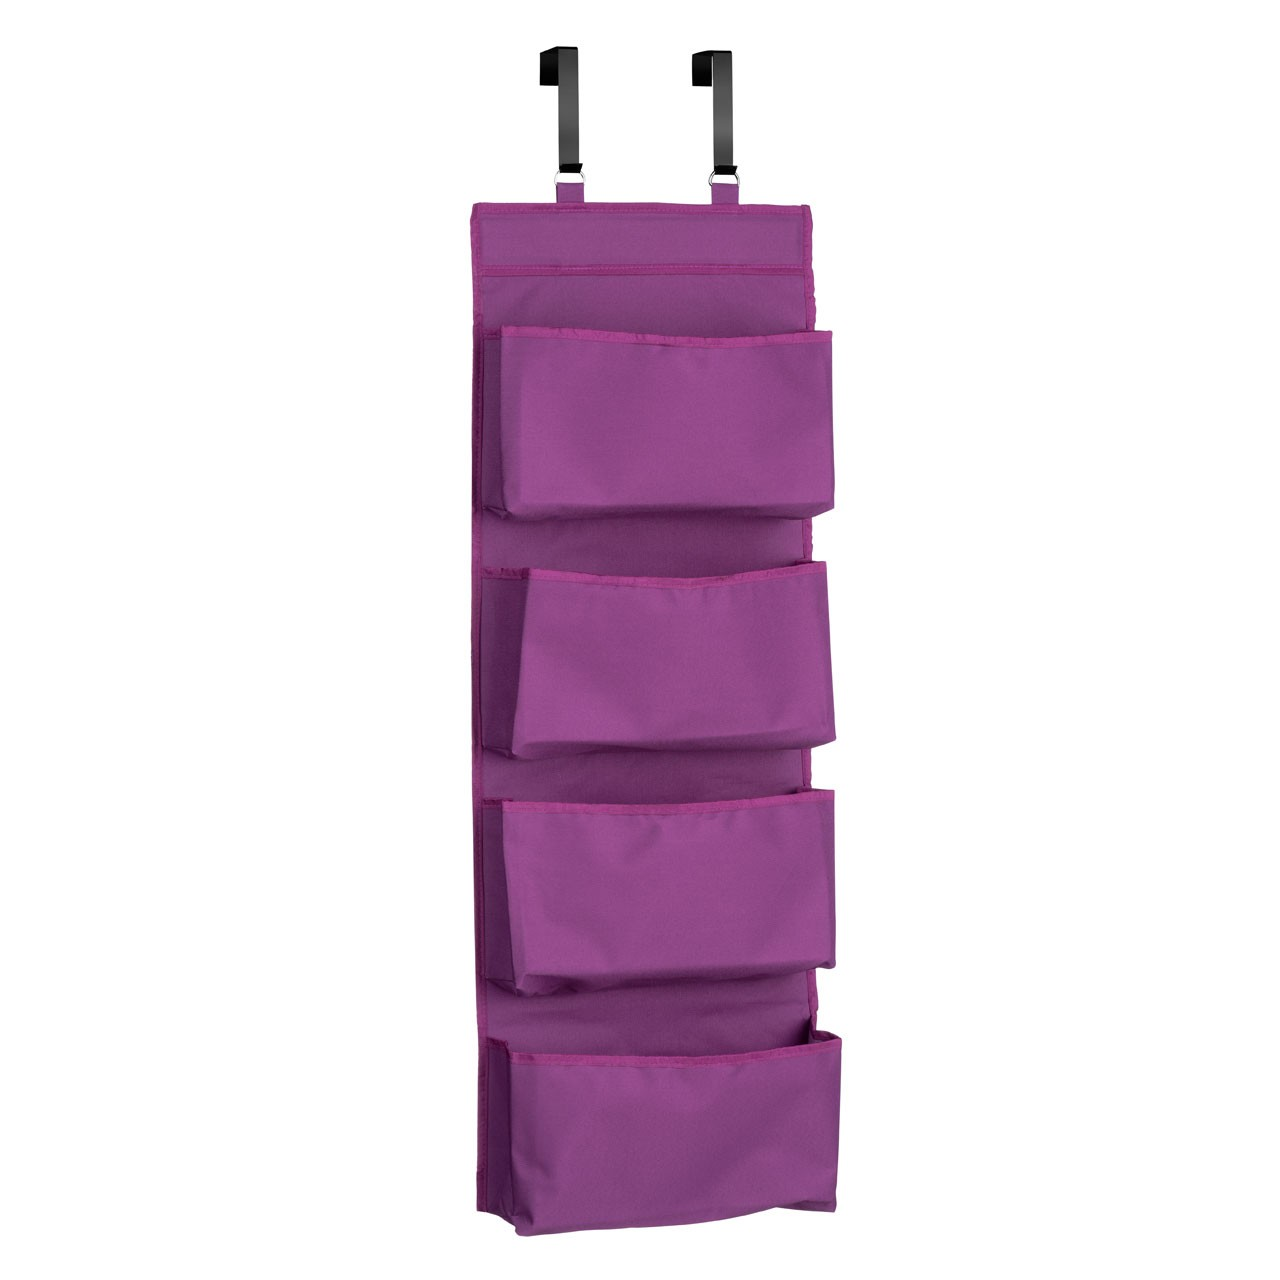 Prime Furnishing 4-Tier Over Door Hanging Organiser - Purple